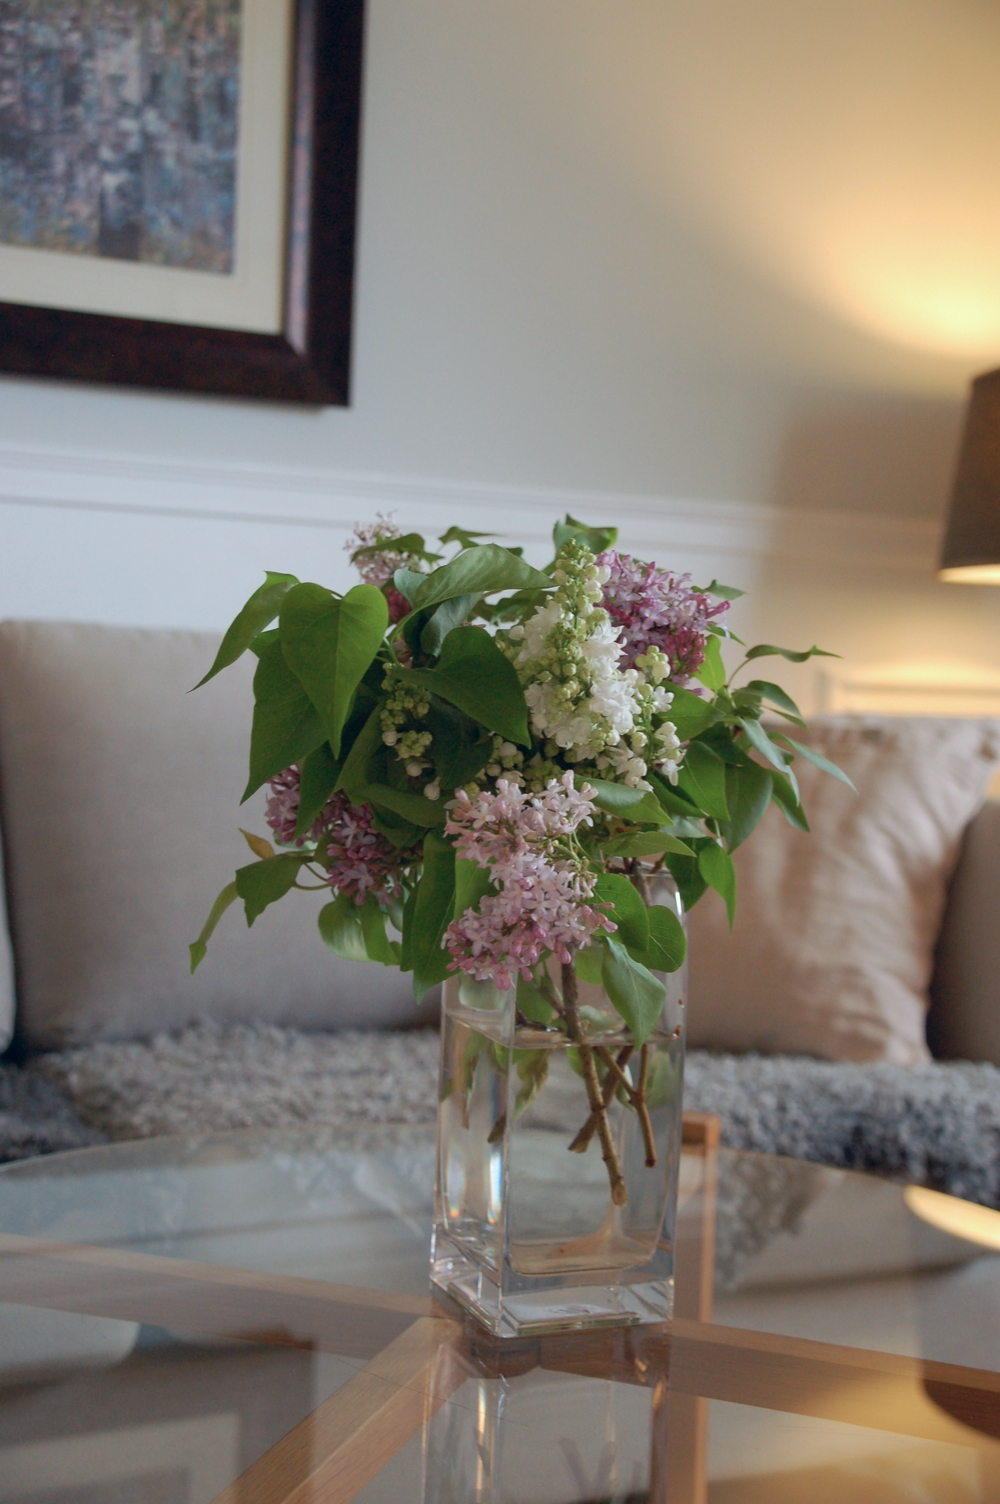 Saved some lilacs from the snow!